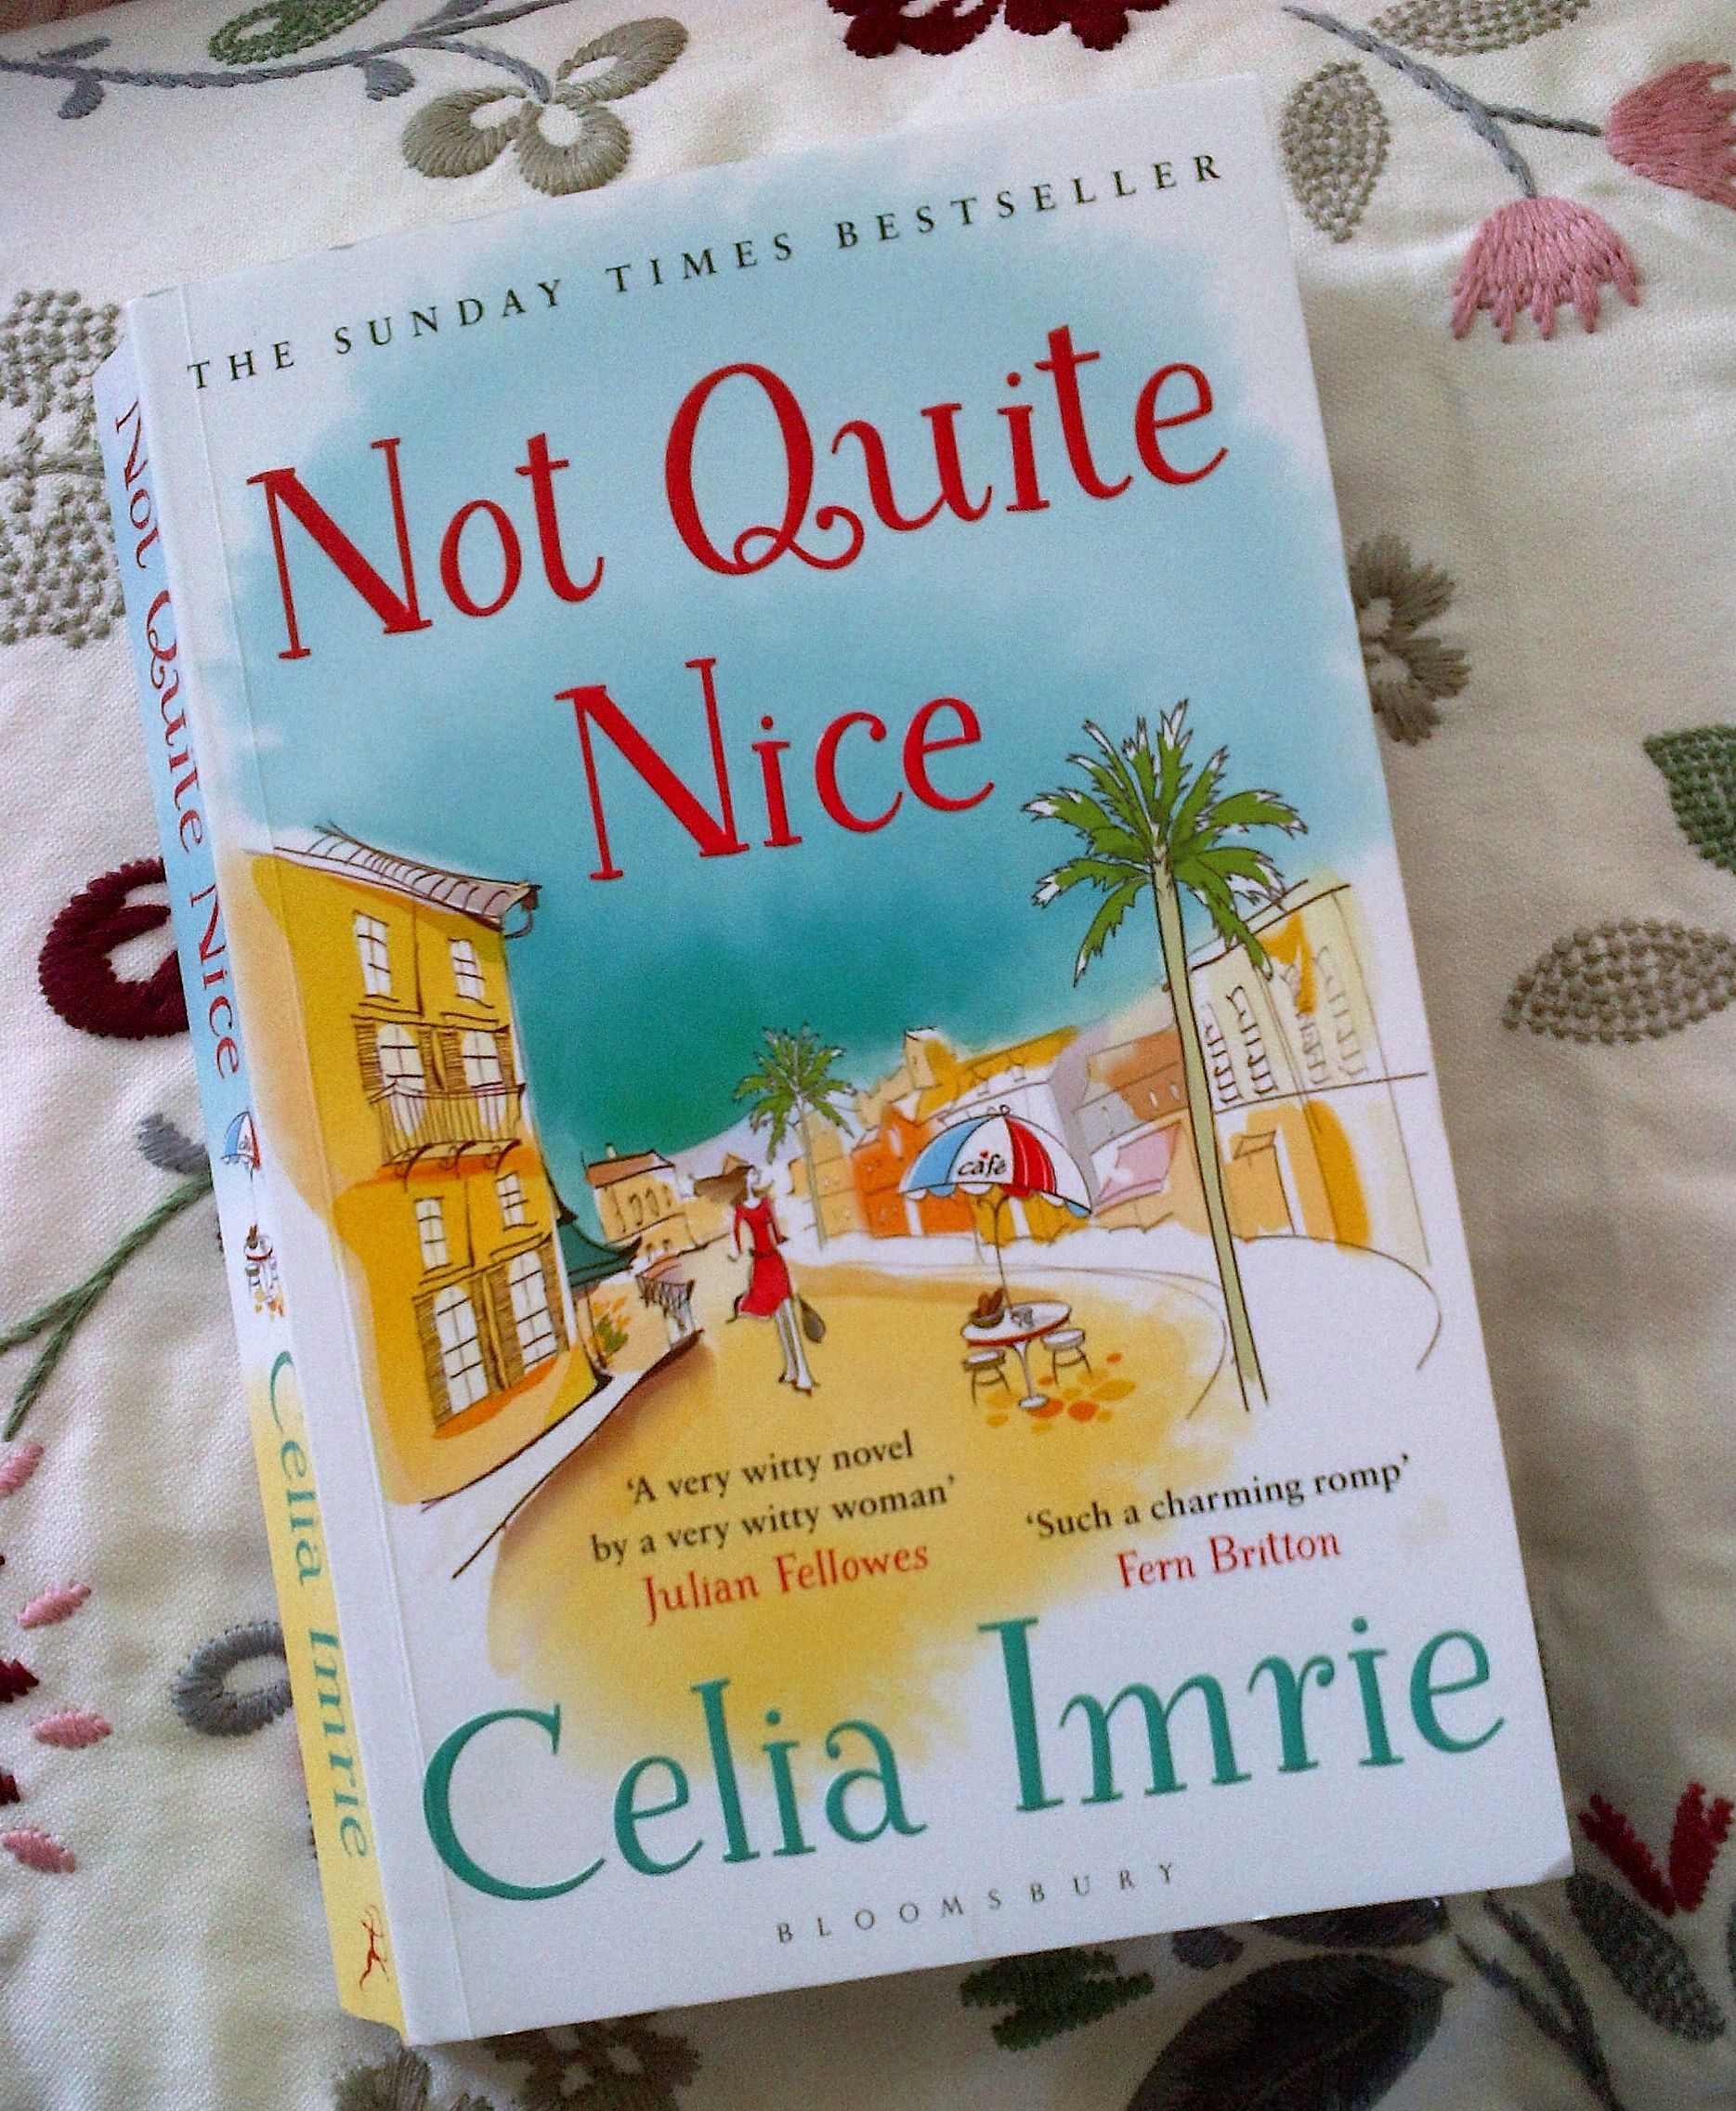 I didn't know Celia Imrie was a writer, too. I love her as an actress and couldn't wait to see what her writing style was. I am a little disappointed, though. Nothing special, just a mixture of characters and lies and discoveries, like a Shakespearian comedy without the superb language. Nevertheless, I am going to read her autobiography next. I'm giving her another chance ;)